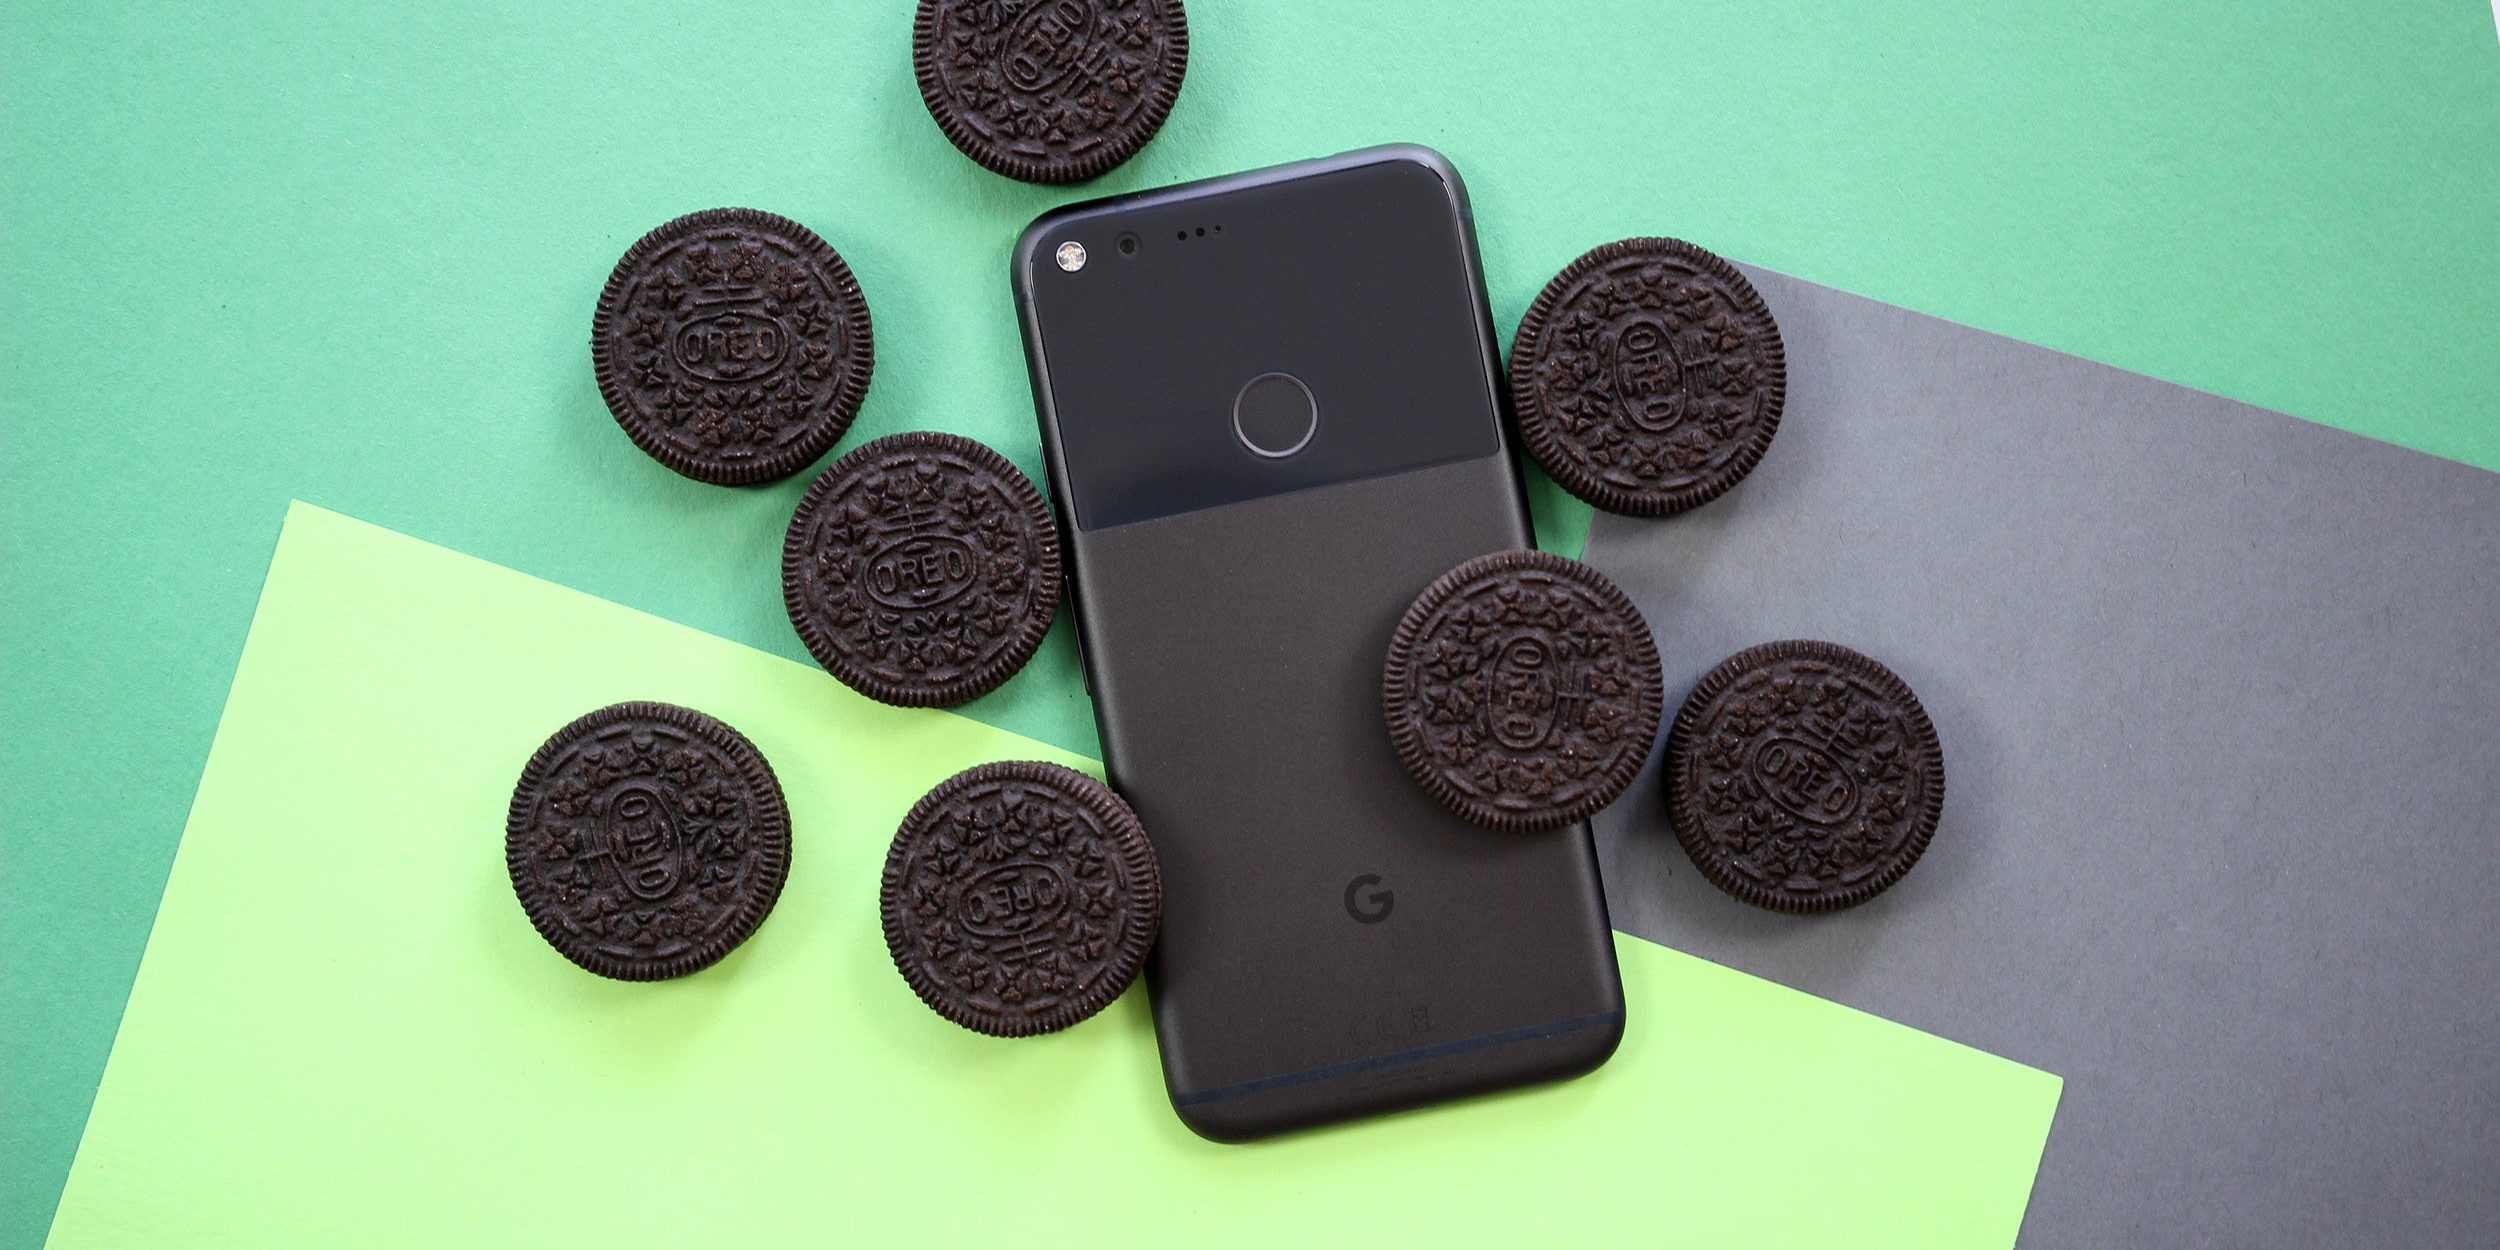 Android O likely scheduled to begin rolling out to Google Pixel on August 21st